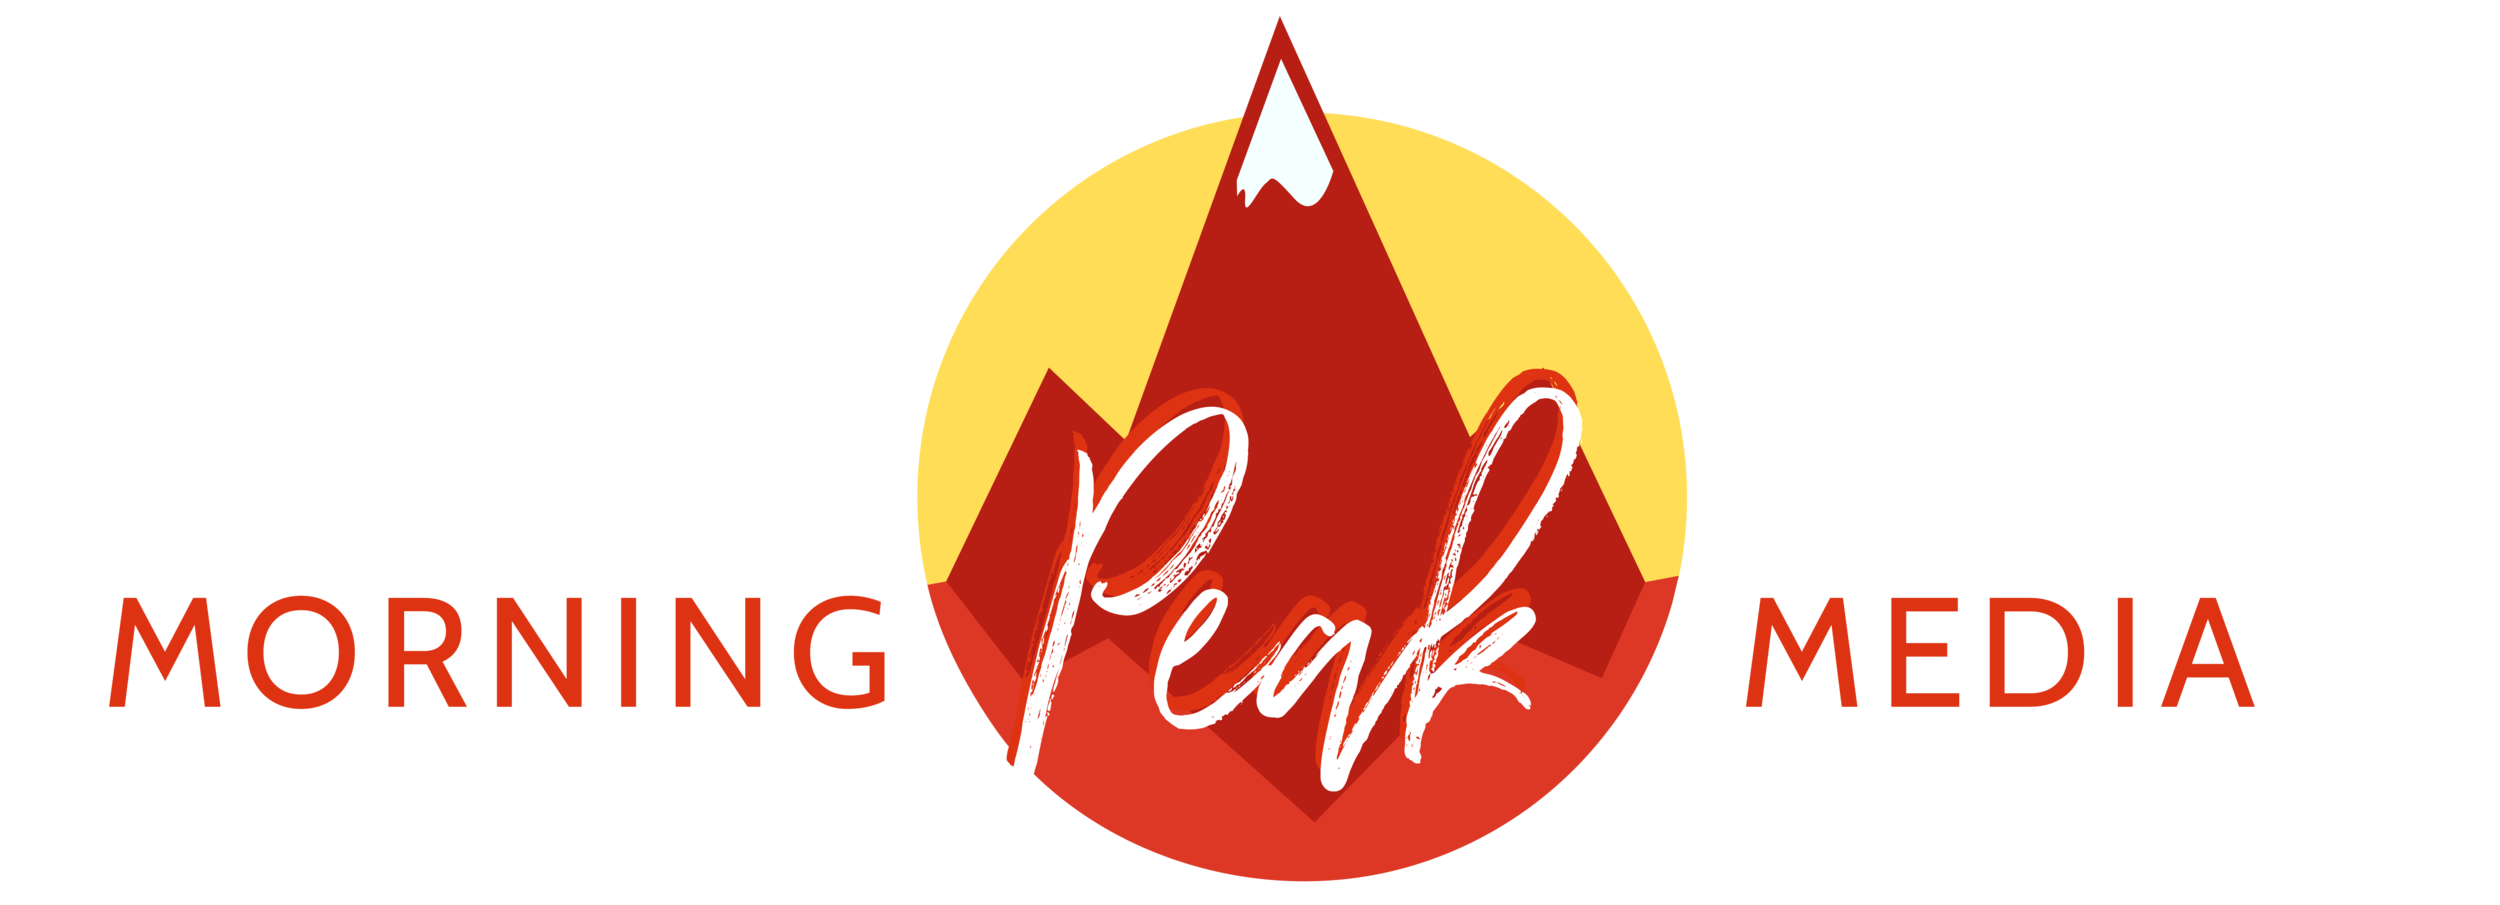 morningpeakmedia.com